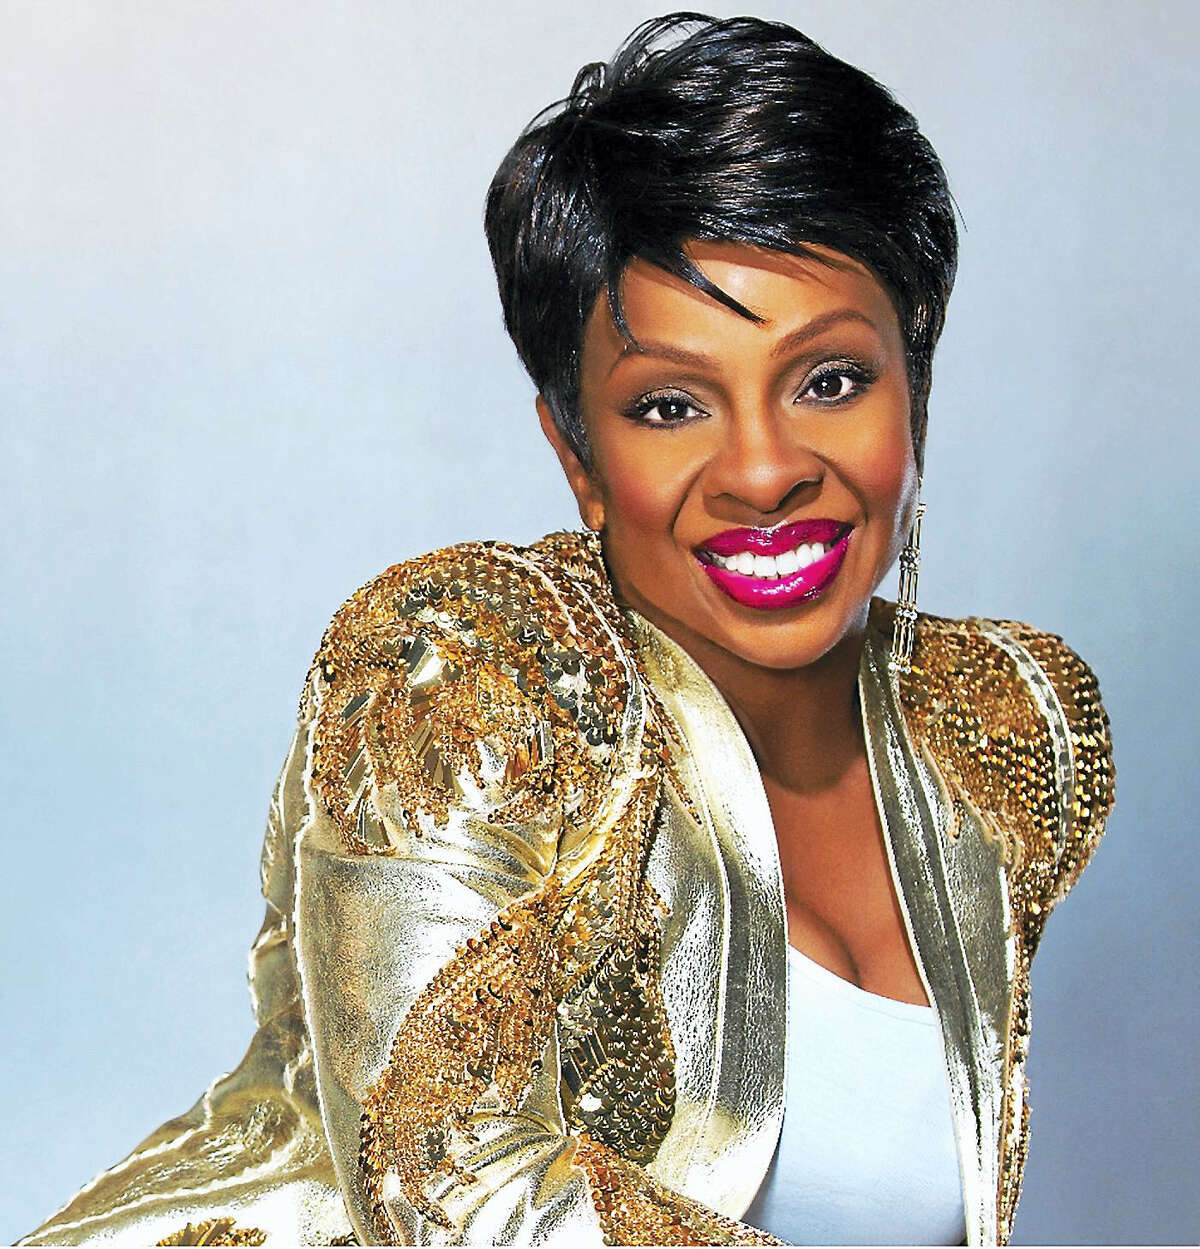 Contributed photoSee Gladys Knight & The Whispers in the Grand Theater at the Foxwoods Resort Casino on Saturday Jan. 14. For more information on this show and all upcoming concerts at Foxwoods, call 800-200-2882 or visit www.foxwoods.com.